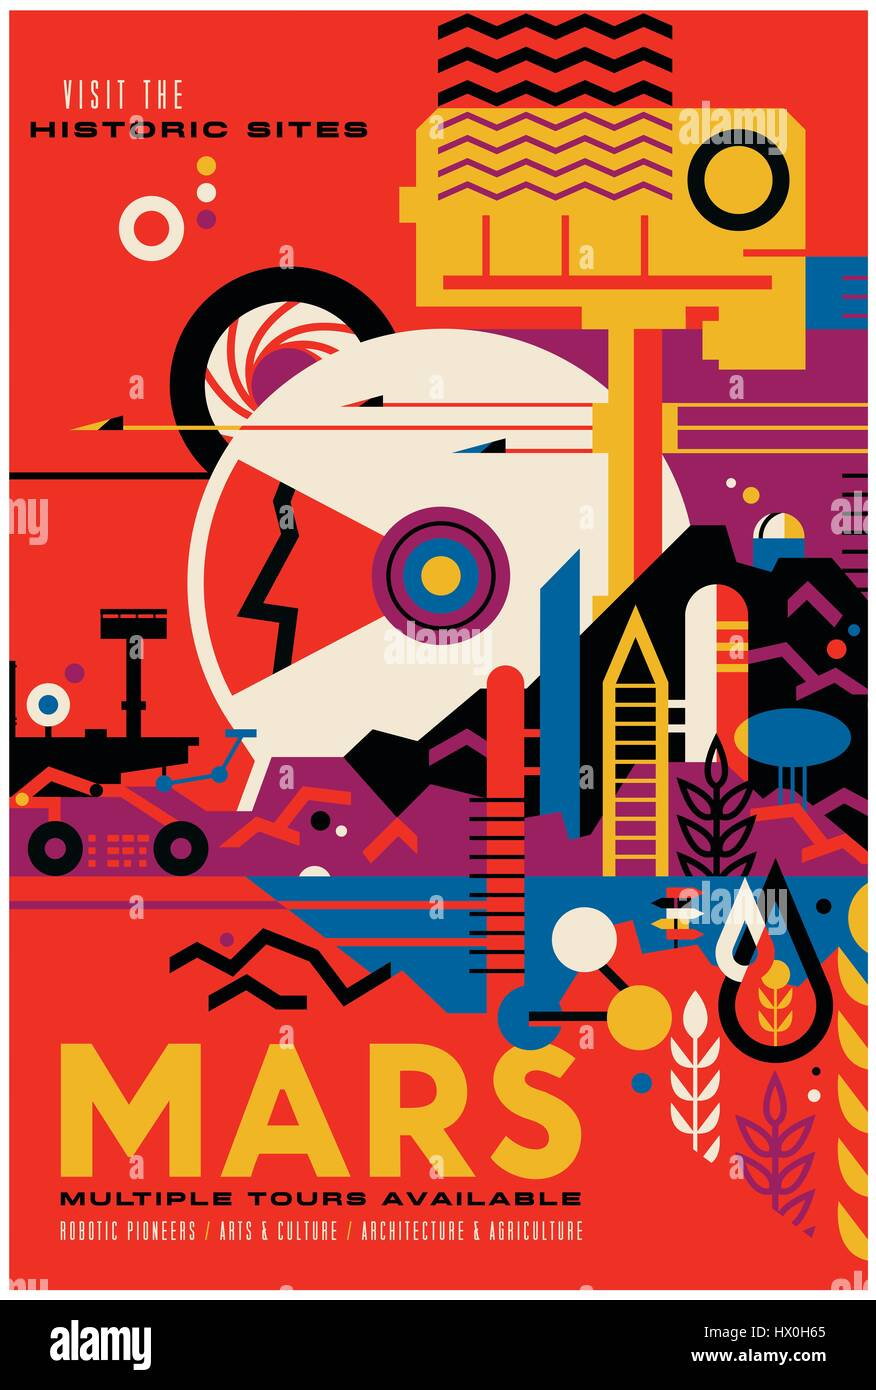 """""""Visit the Historic Sites - MARS Multiple Tours Available"""" Imaginary Travel poster released by The Studio at NASA's - Stock Image"""